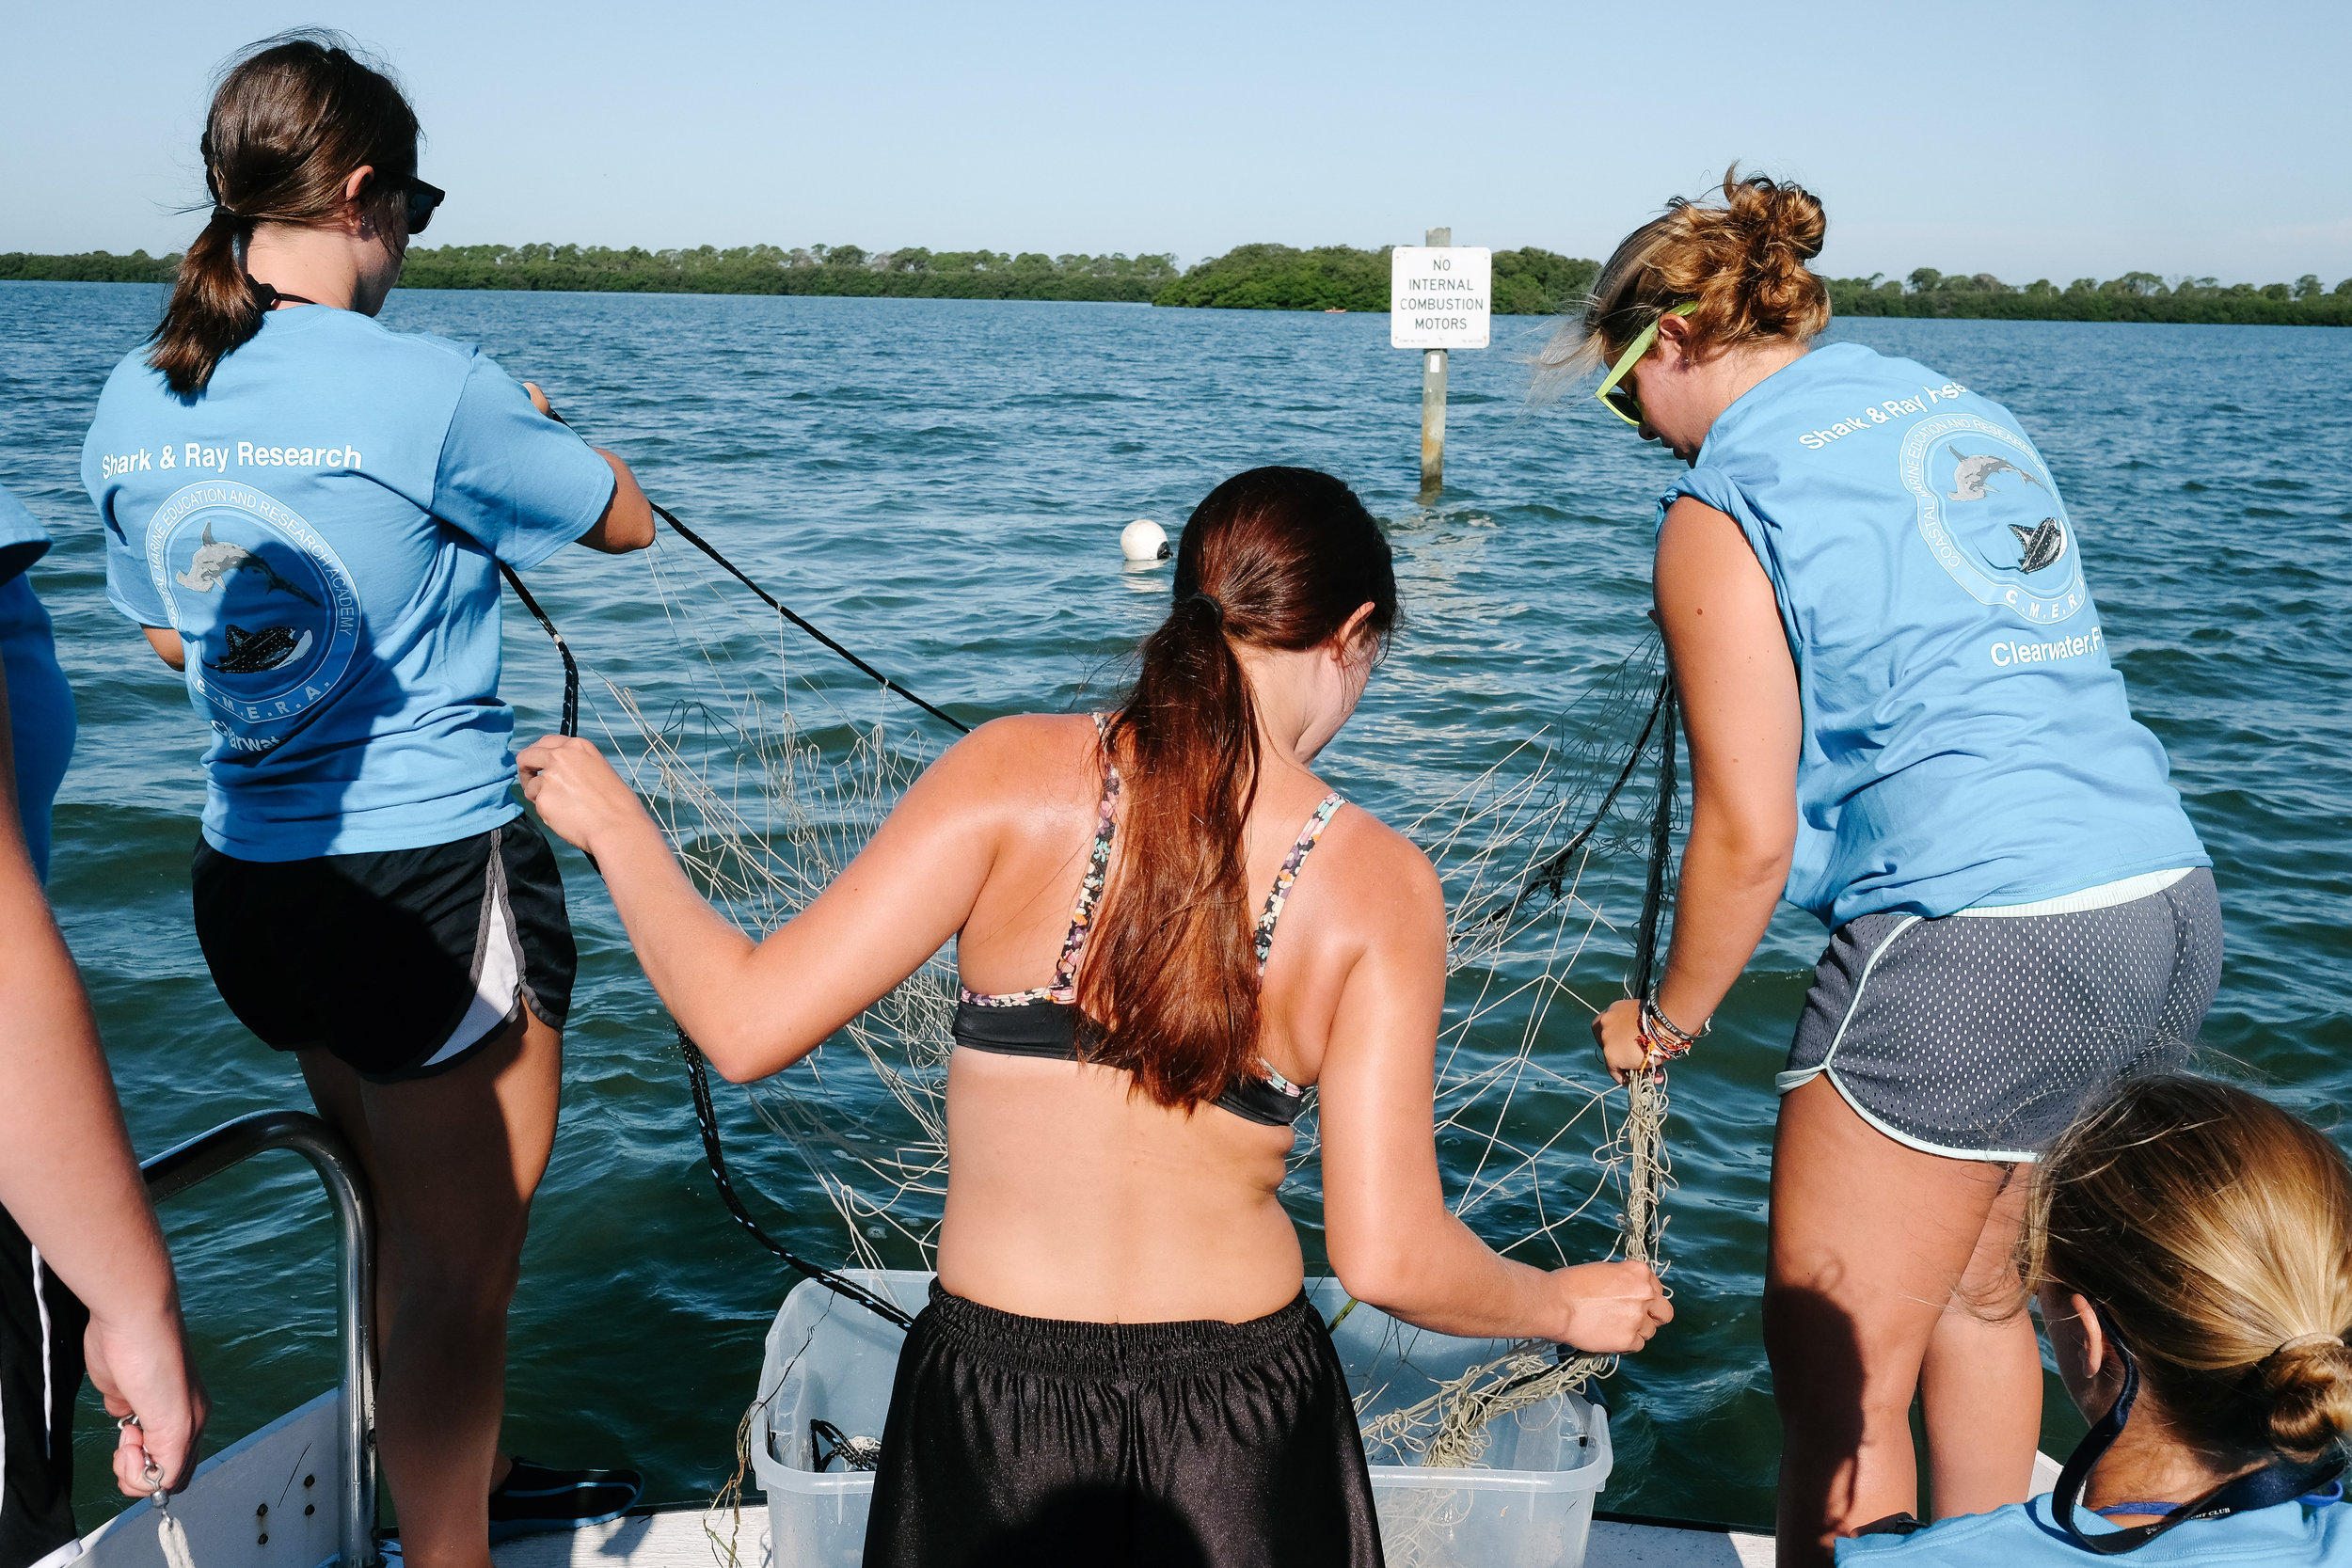 Three CMERA students set a 200-foot tangle net in the water. The net is designed to catch larger marine animals like rays, while allowing smaller fish to simply swim through it.